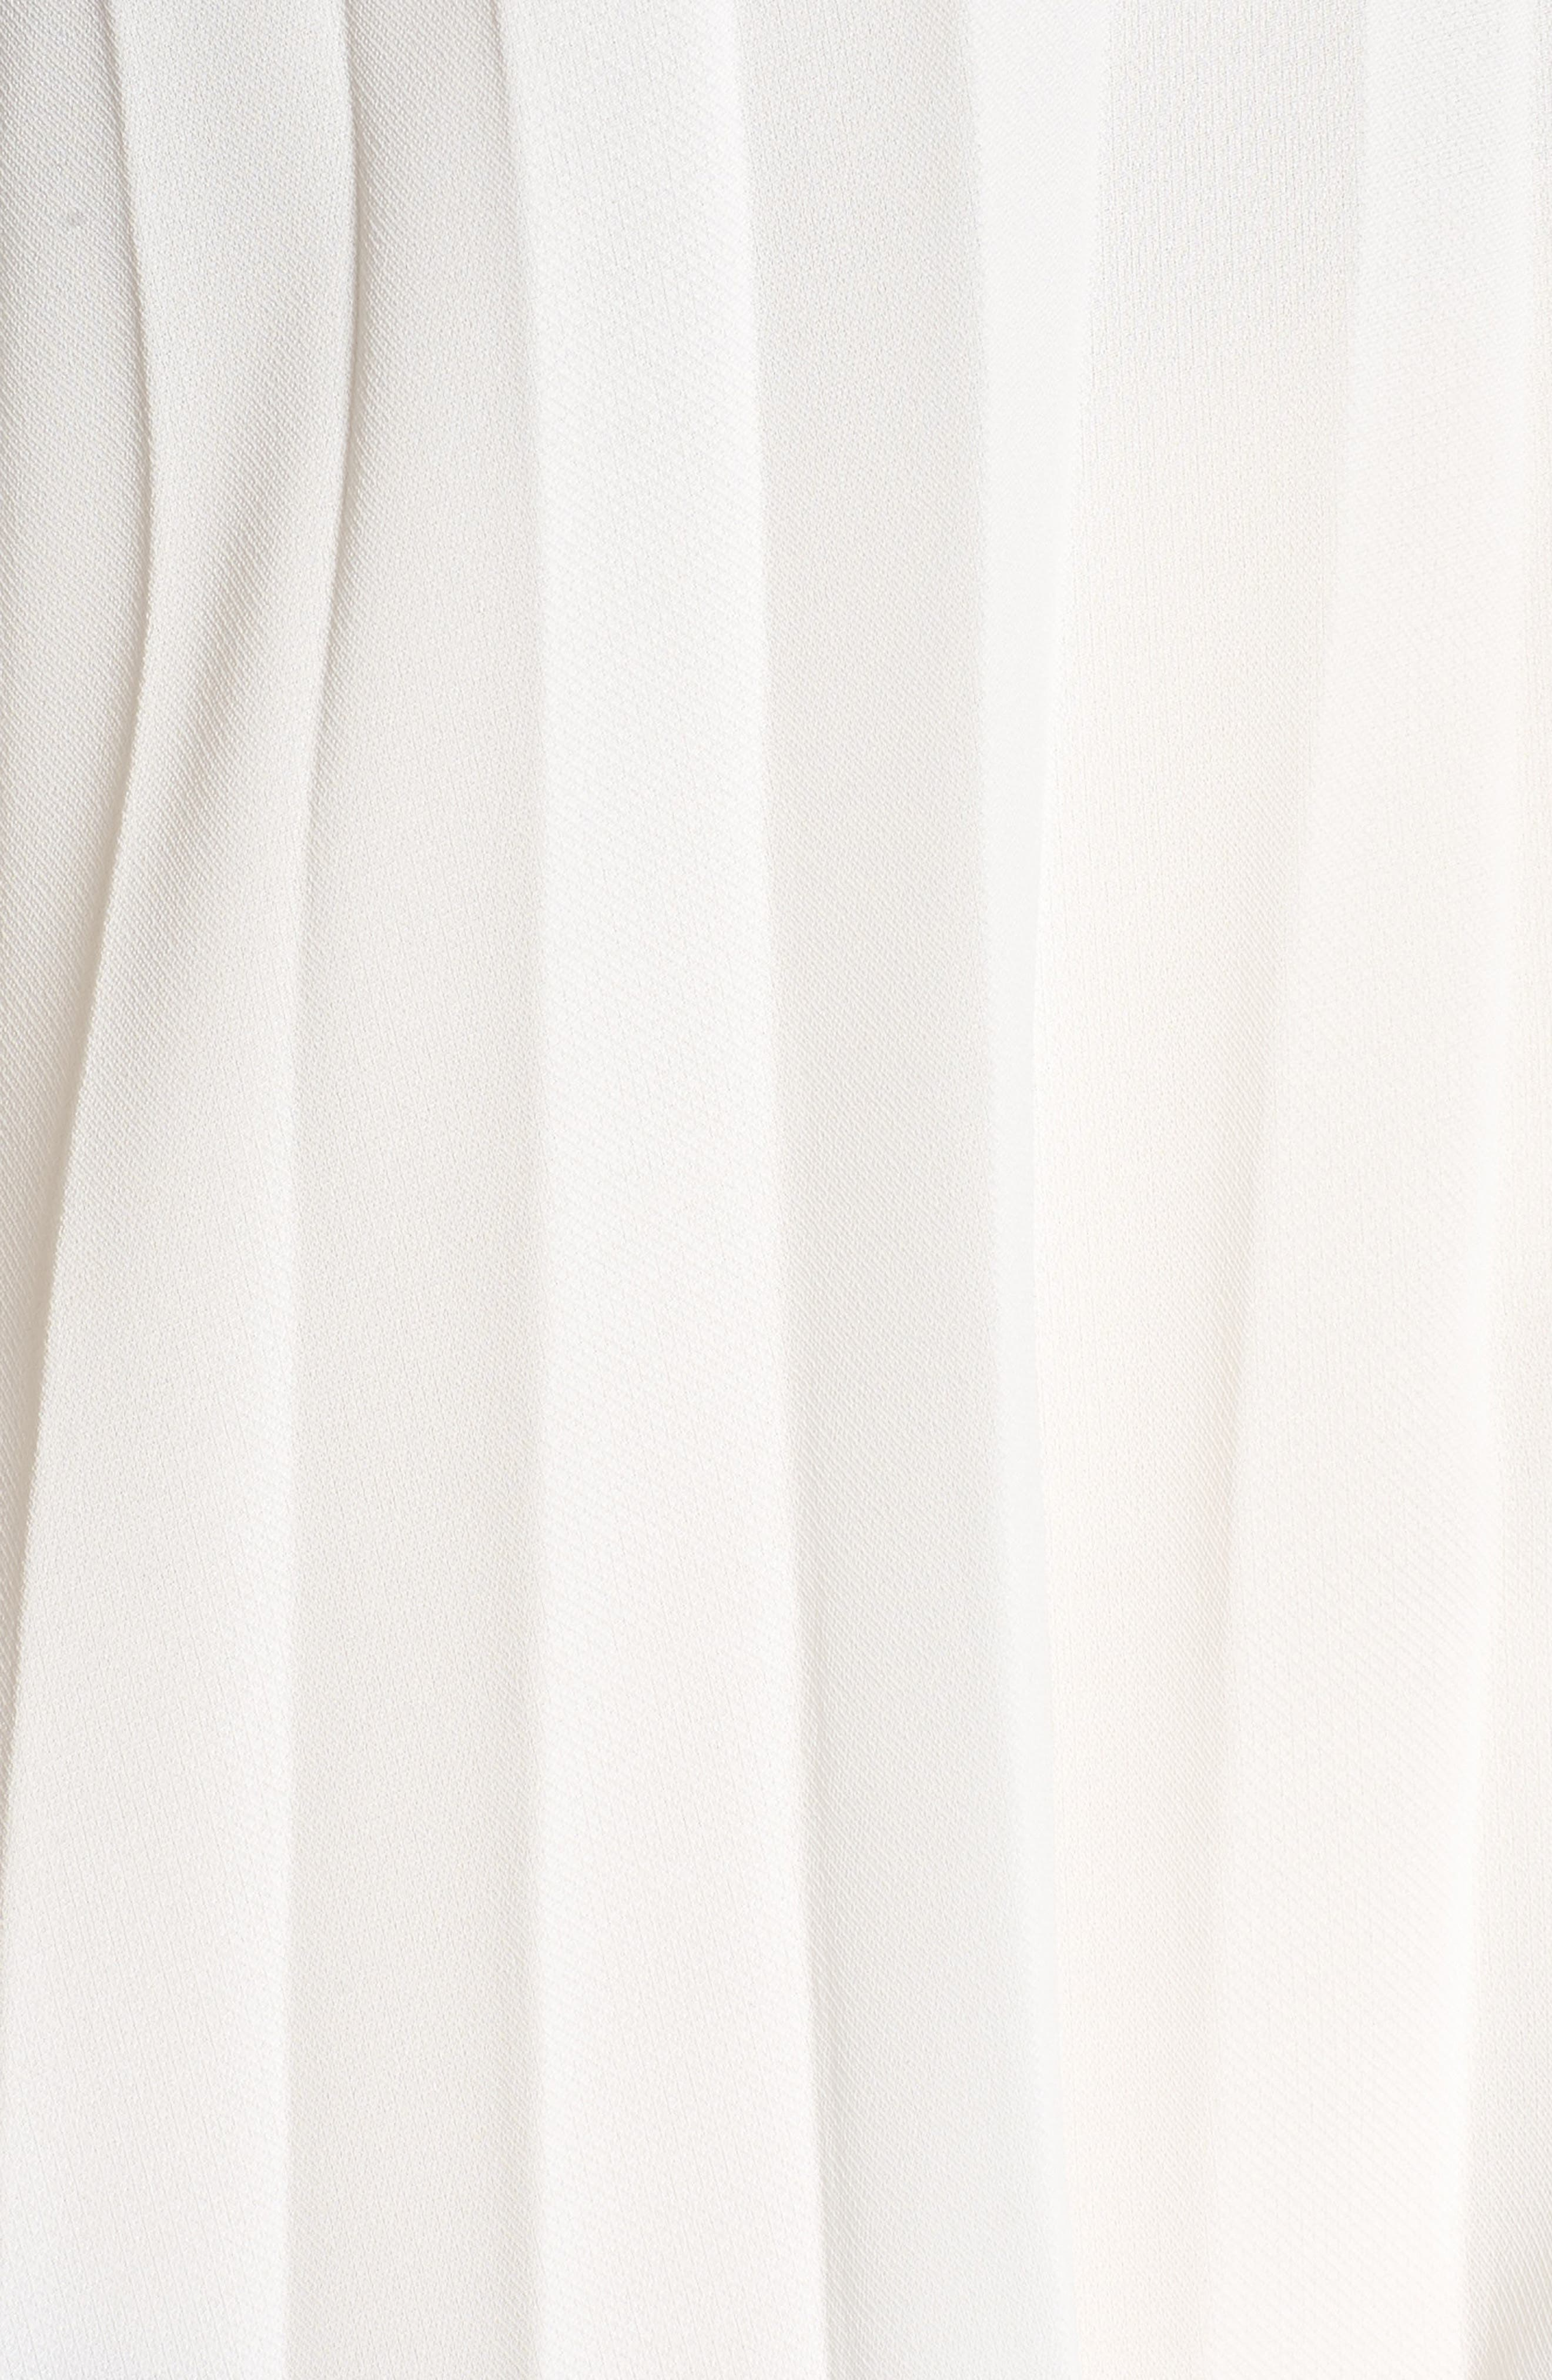 Bishop + Young Pleated Top,                             Alternate thumbnail 6, color,                             WHITE